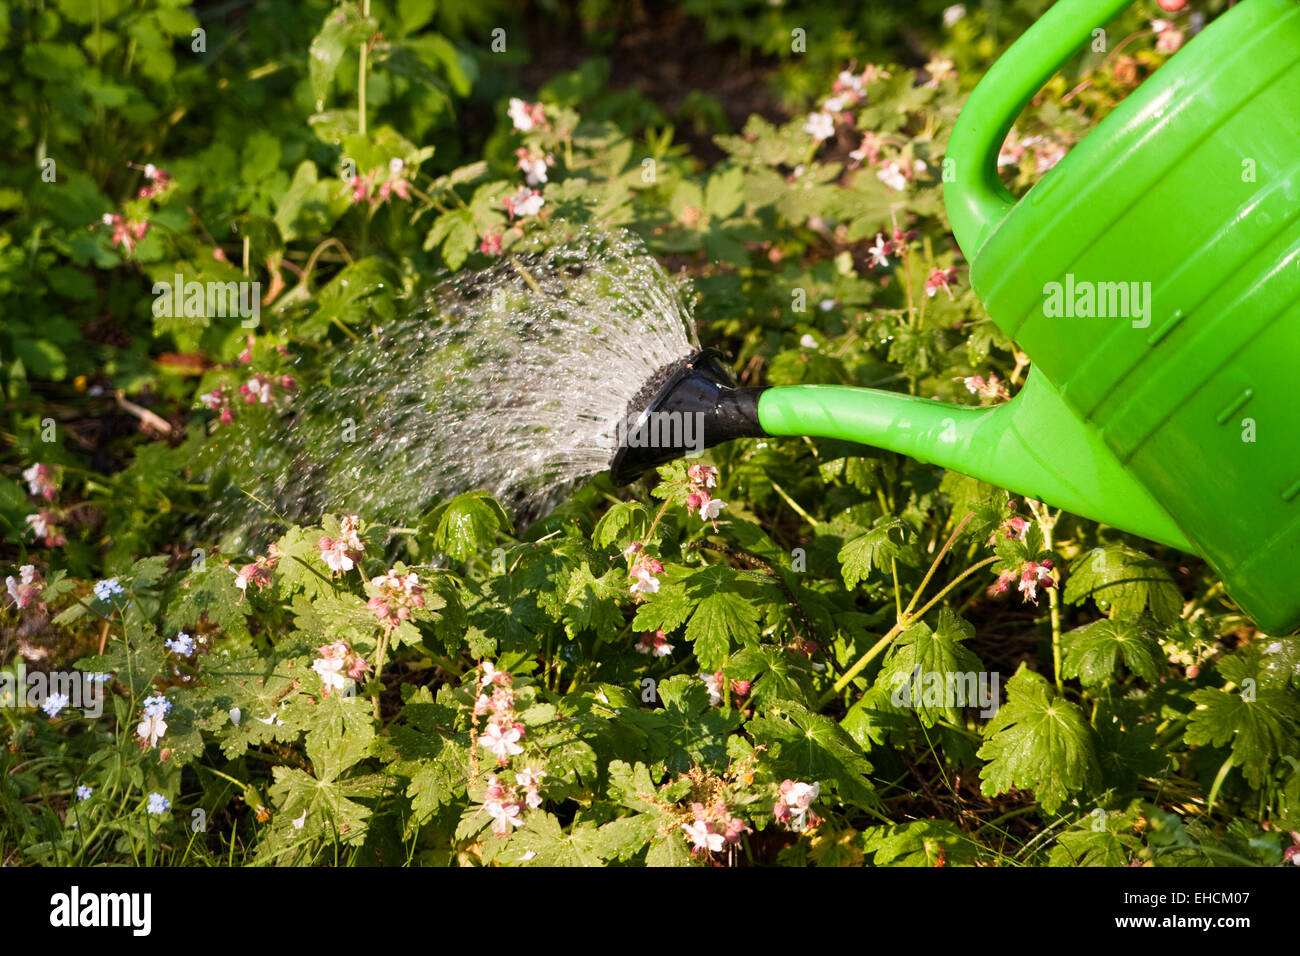 Pflanzen gießen, watering the plants - Stock Image